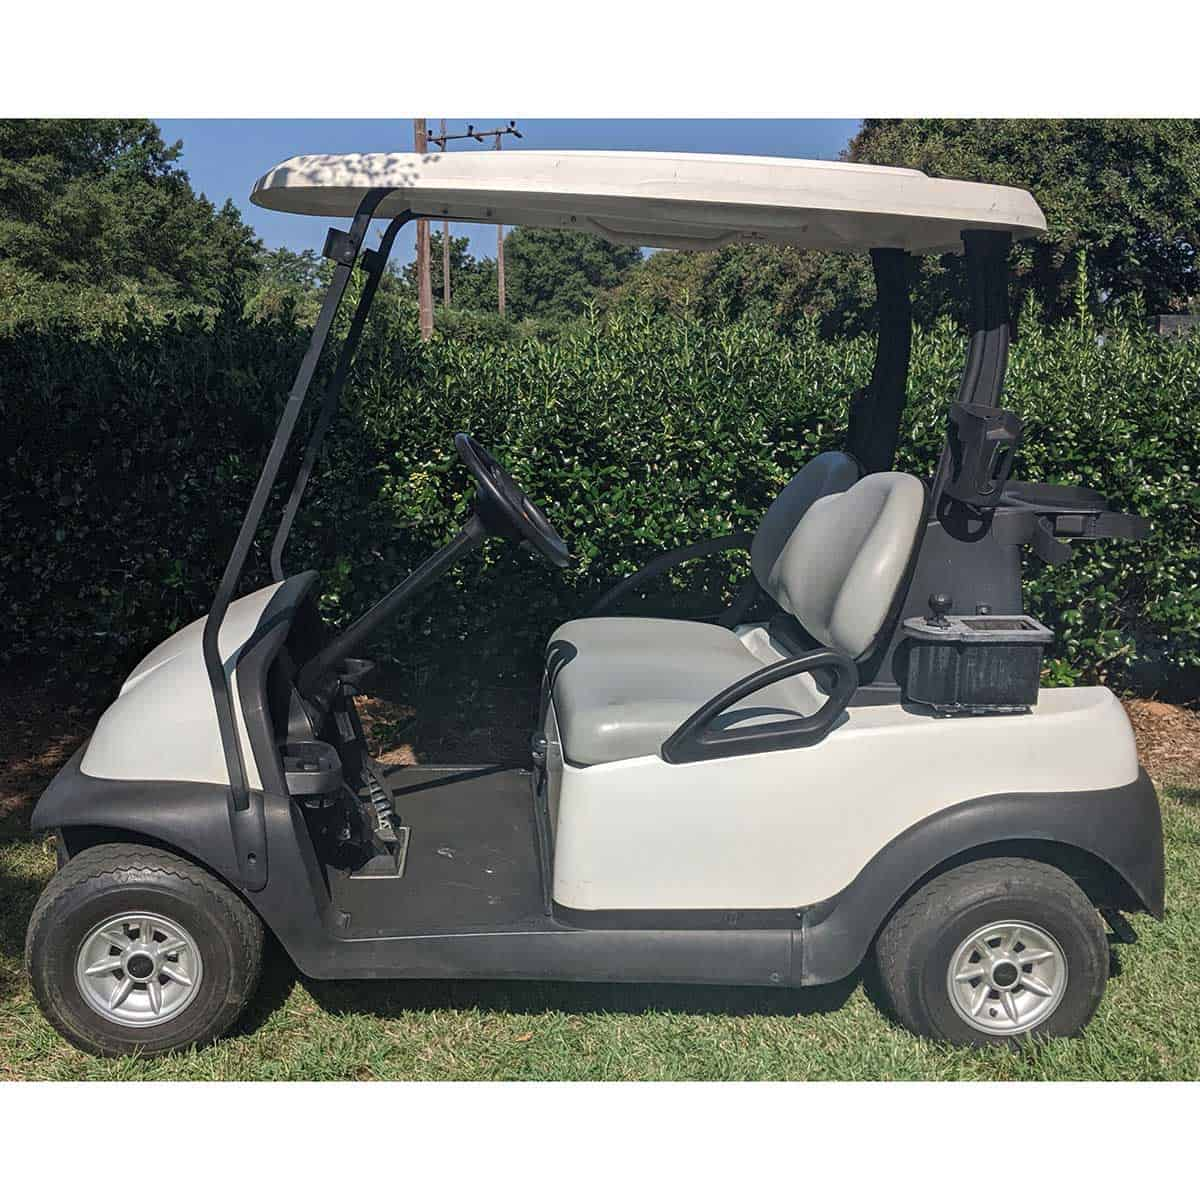 White-2014-Club-Car-2-Pass-Side